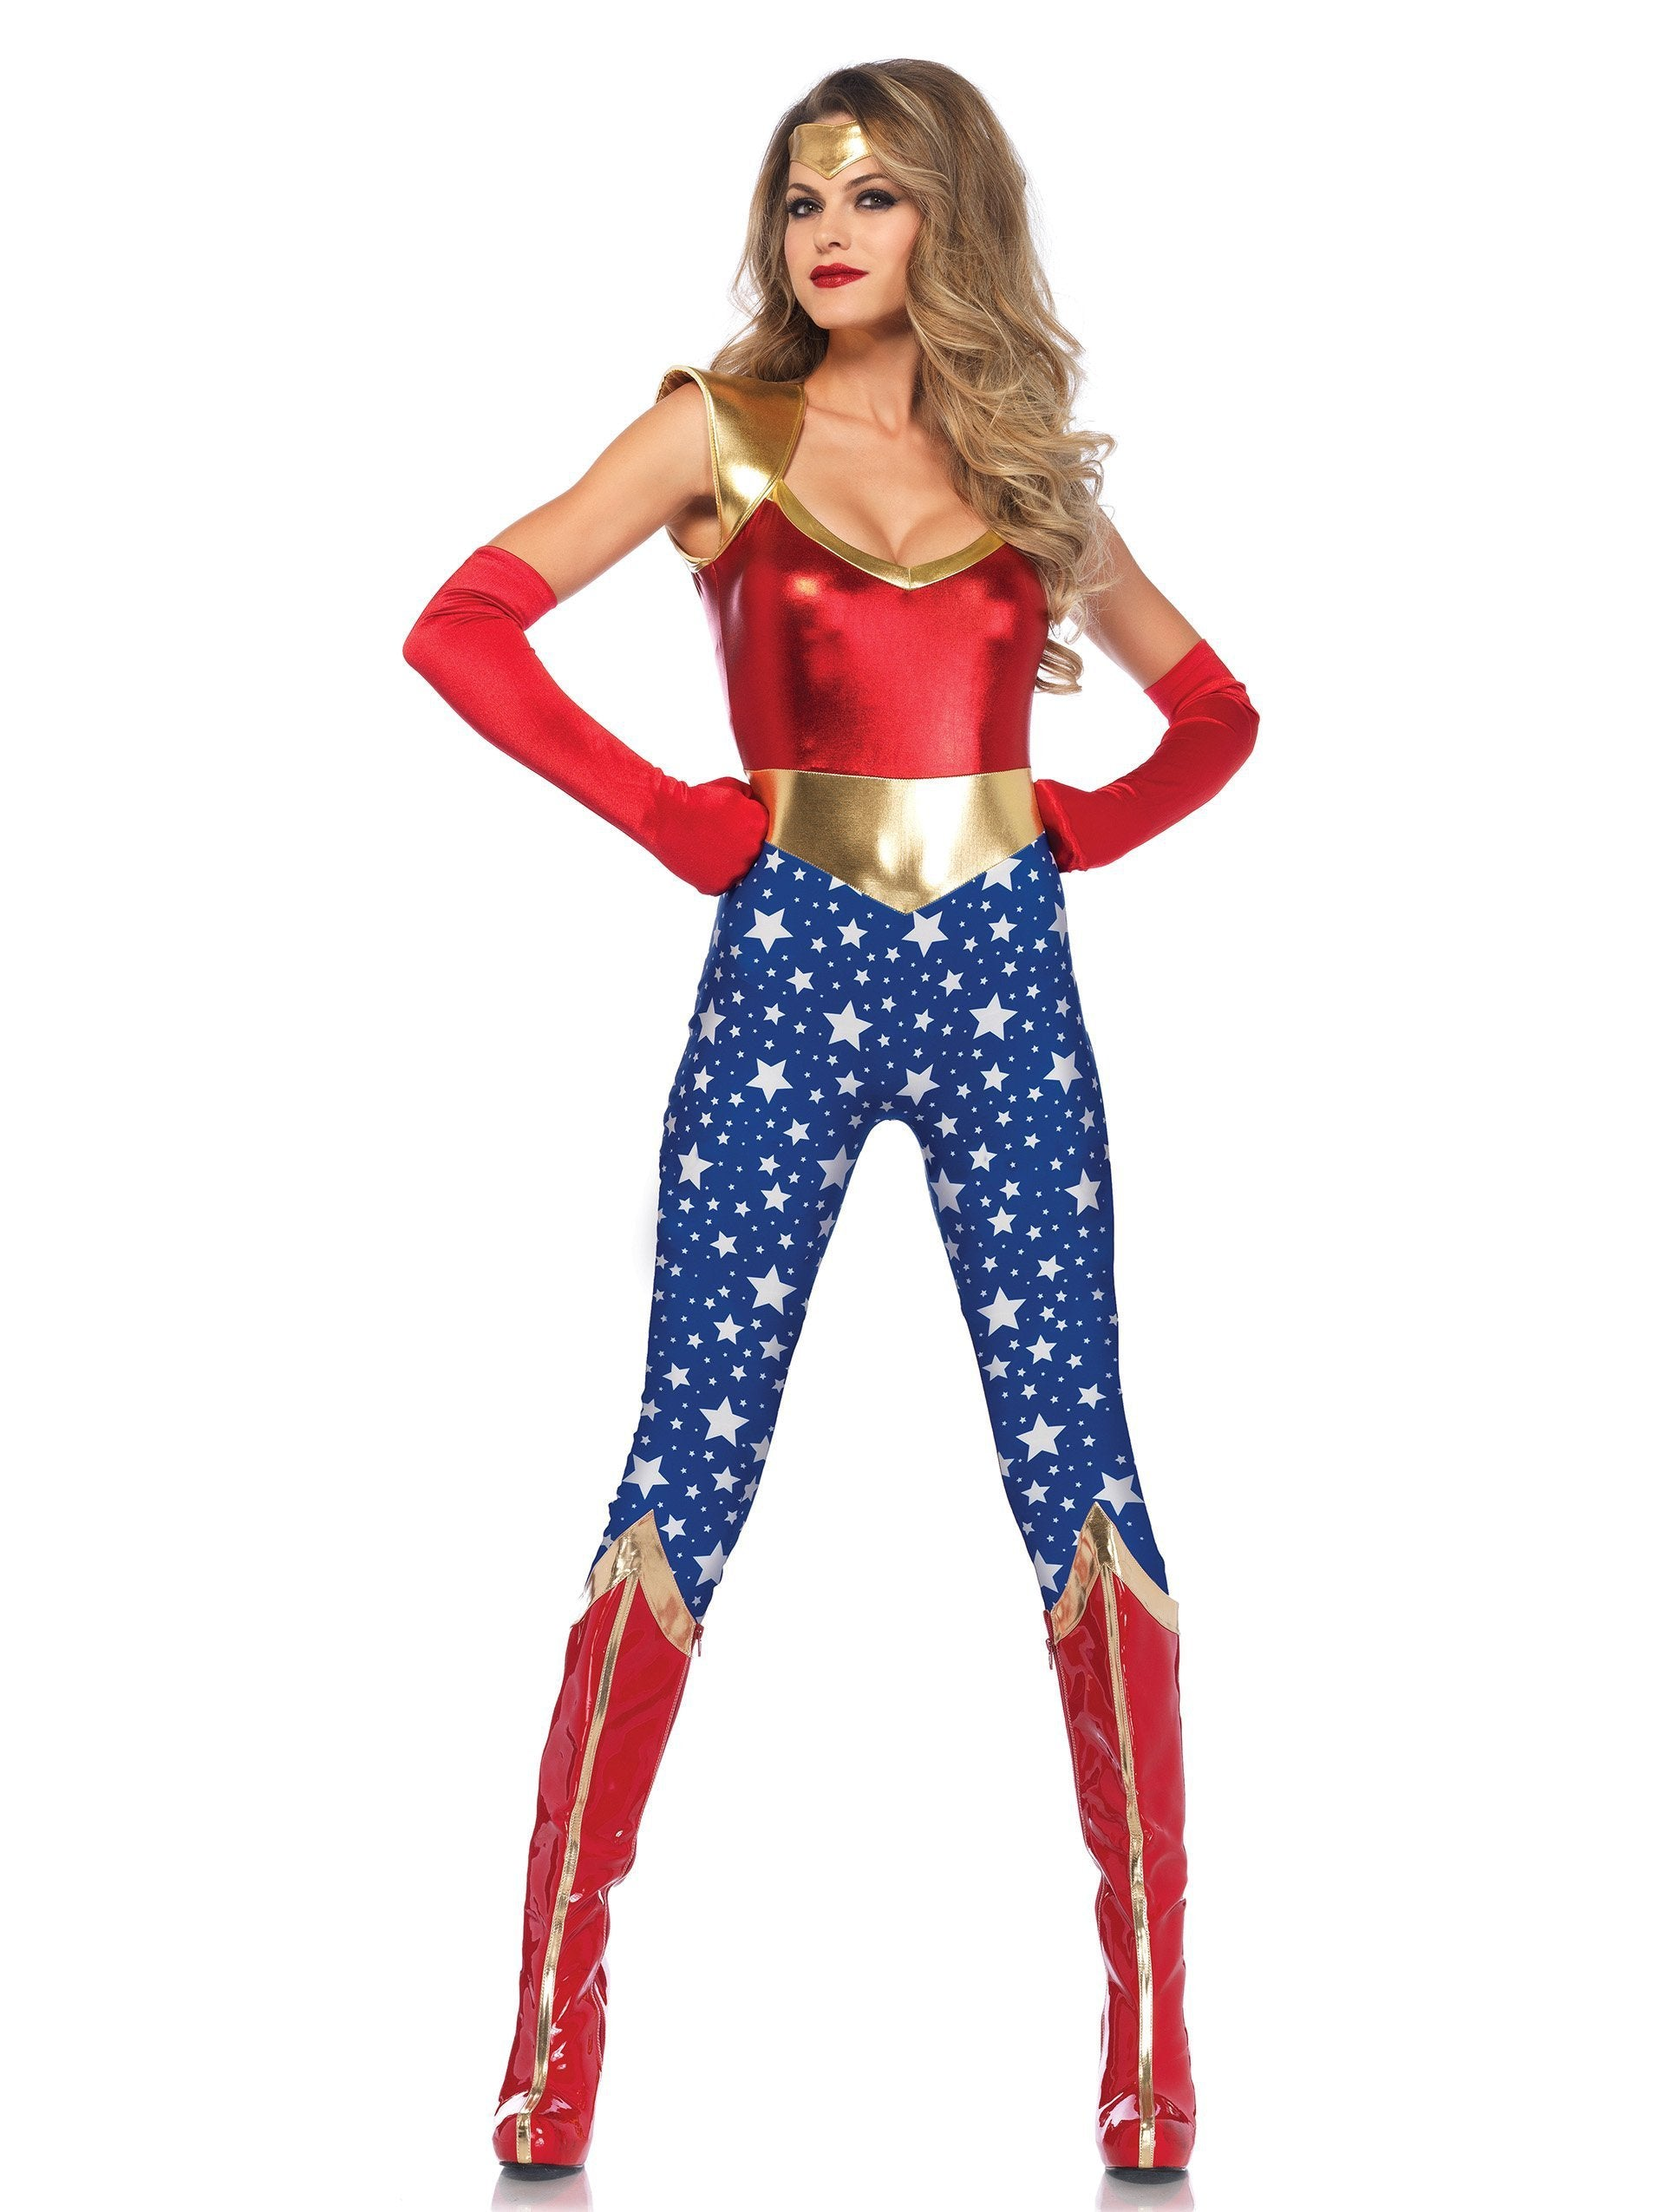 Leg Avenue Costumes LARGE Adult Sensational SuperHero Costume